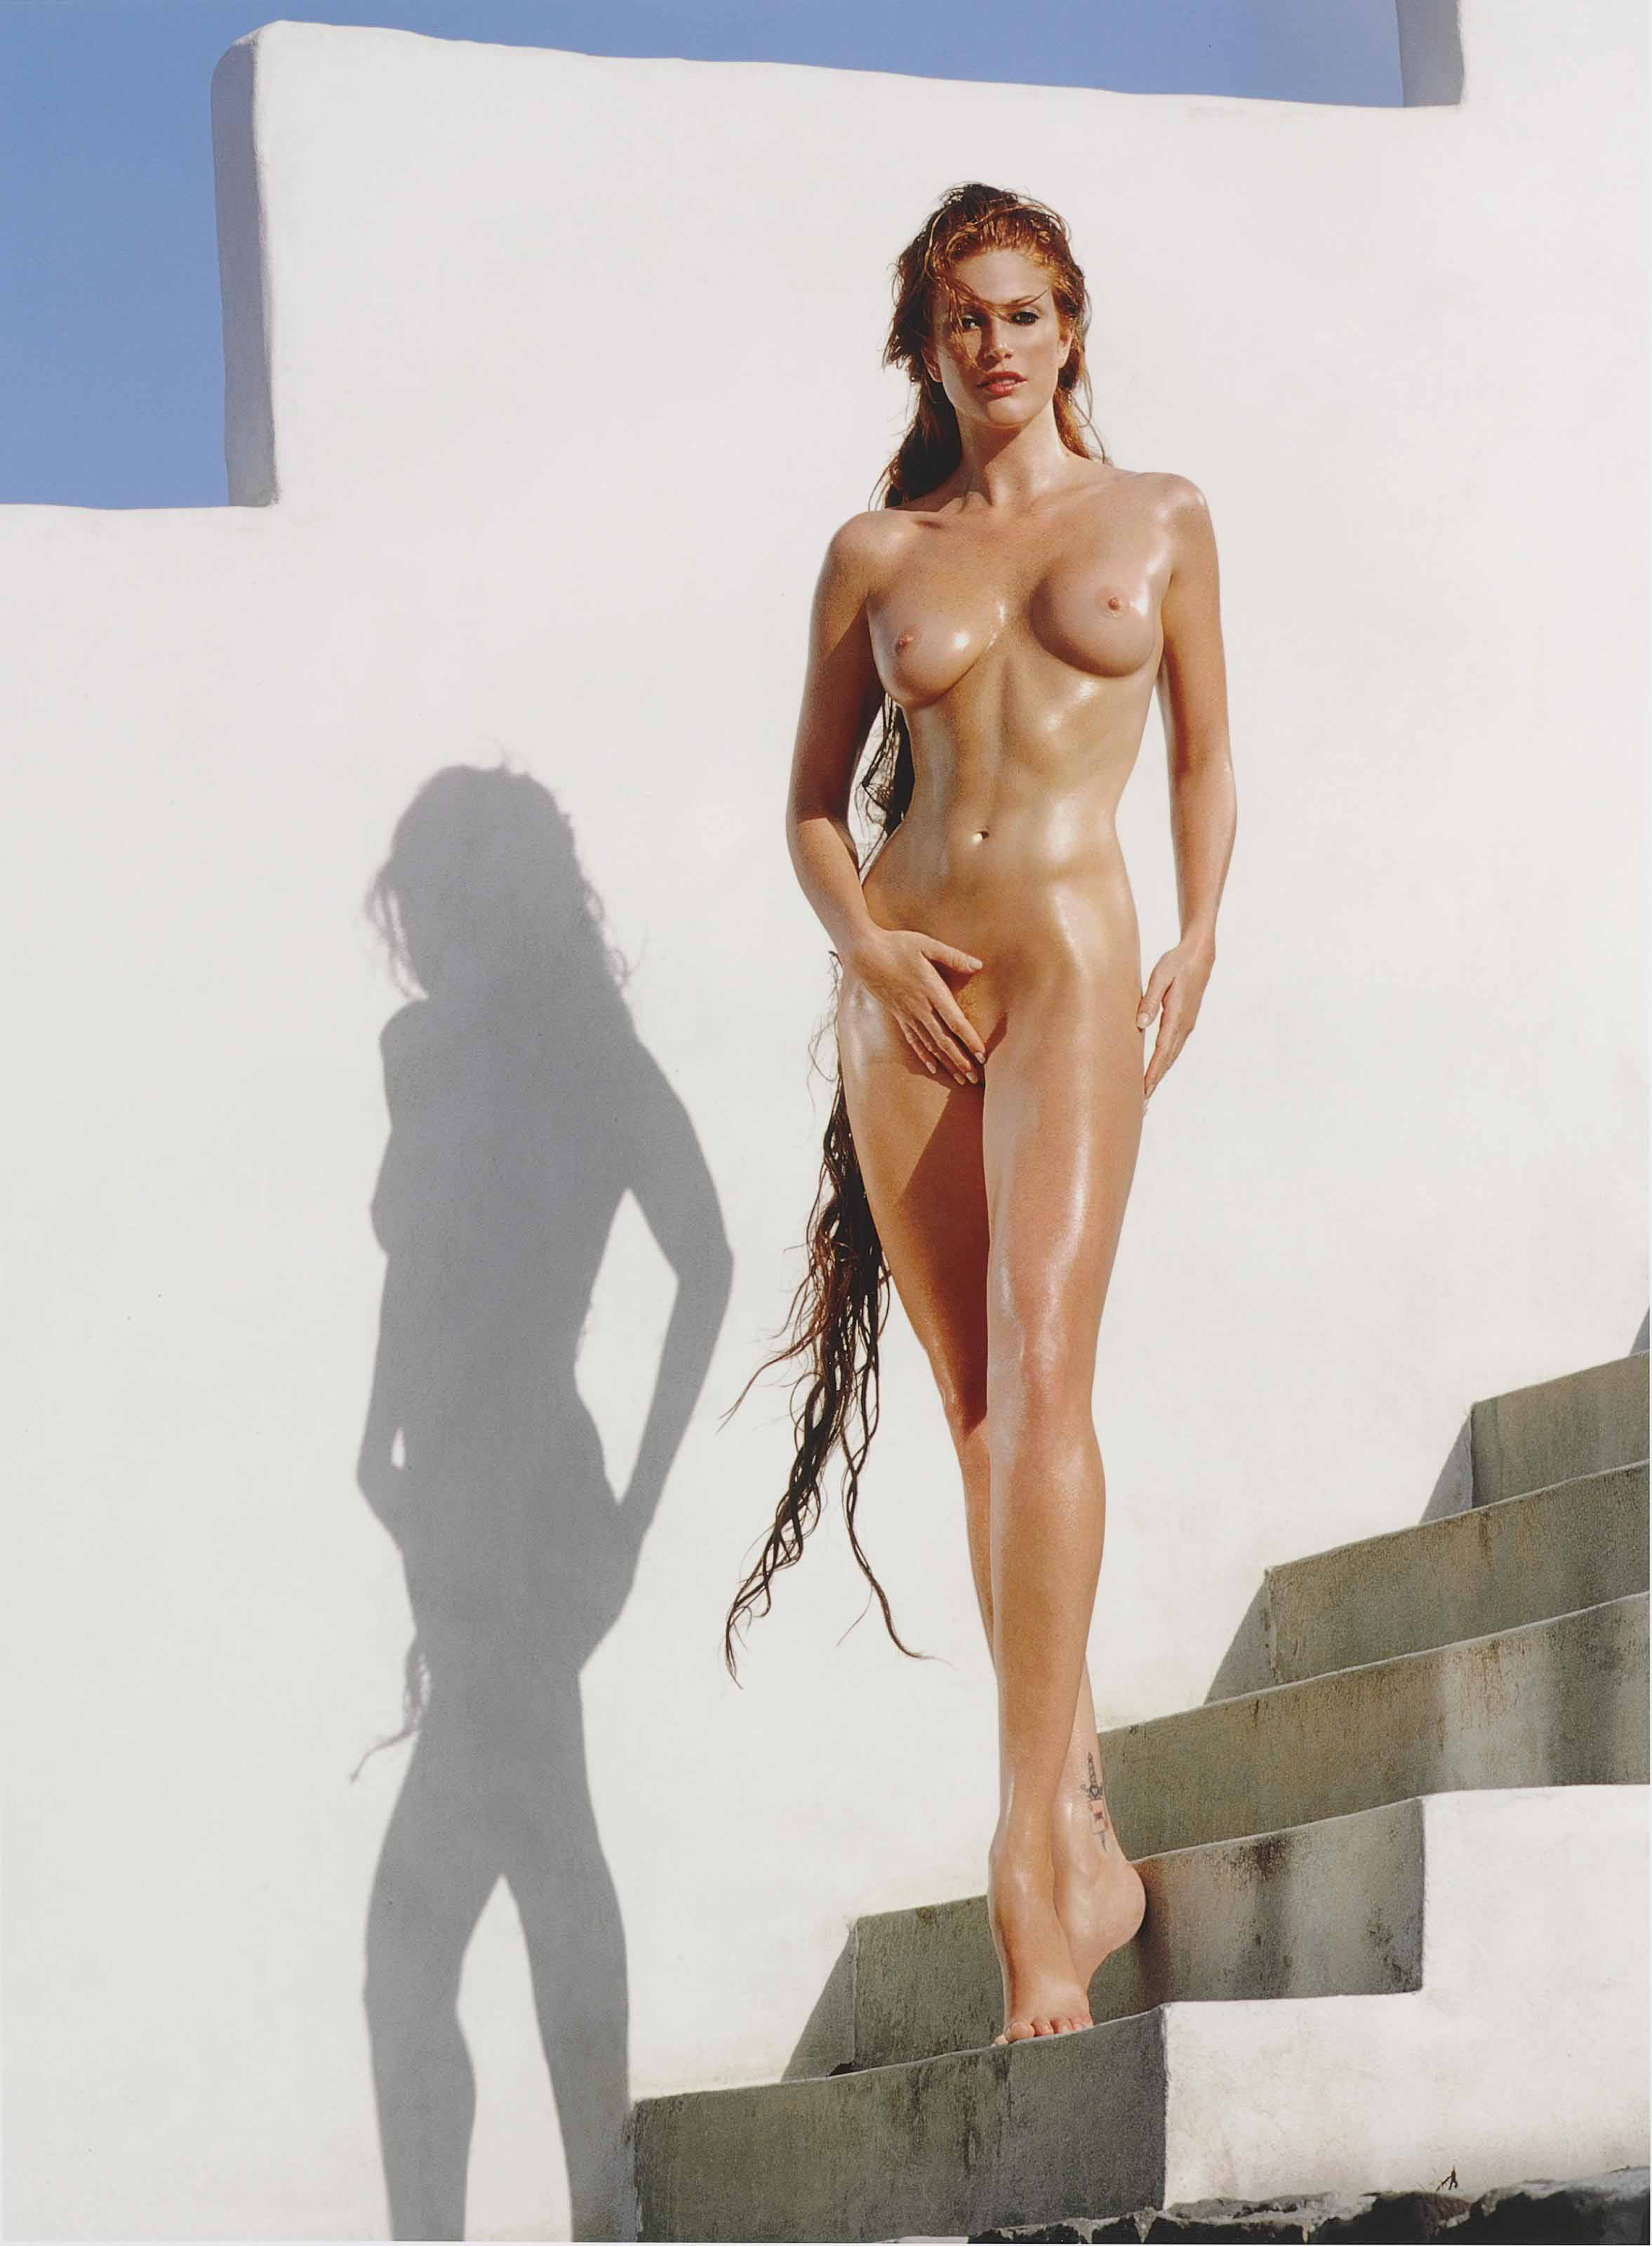 Angie Everhart for 'Playboy', February 2000